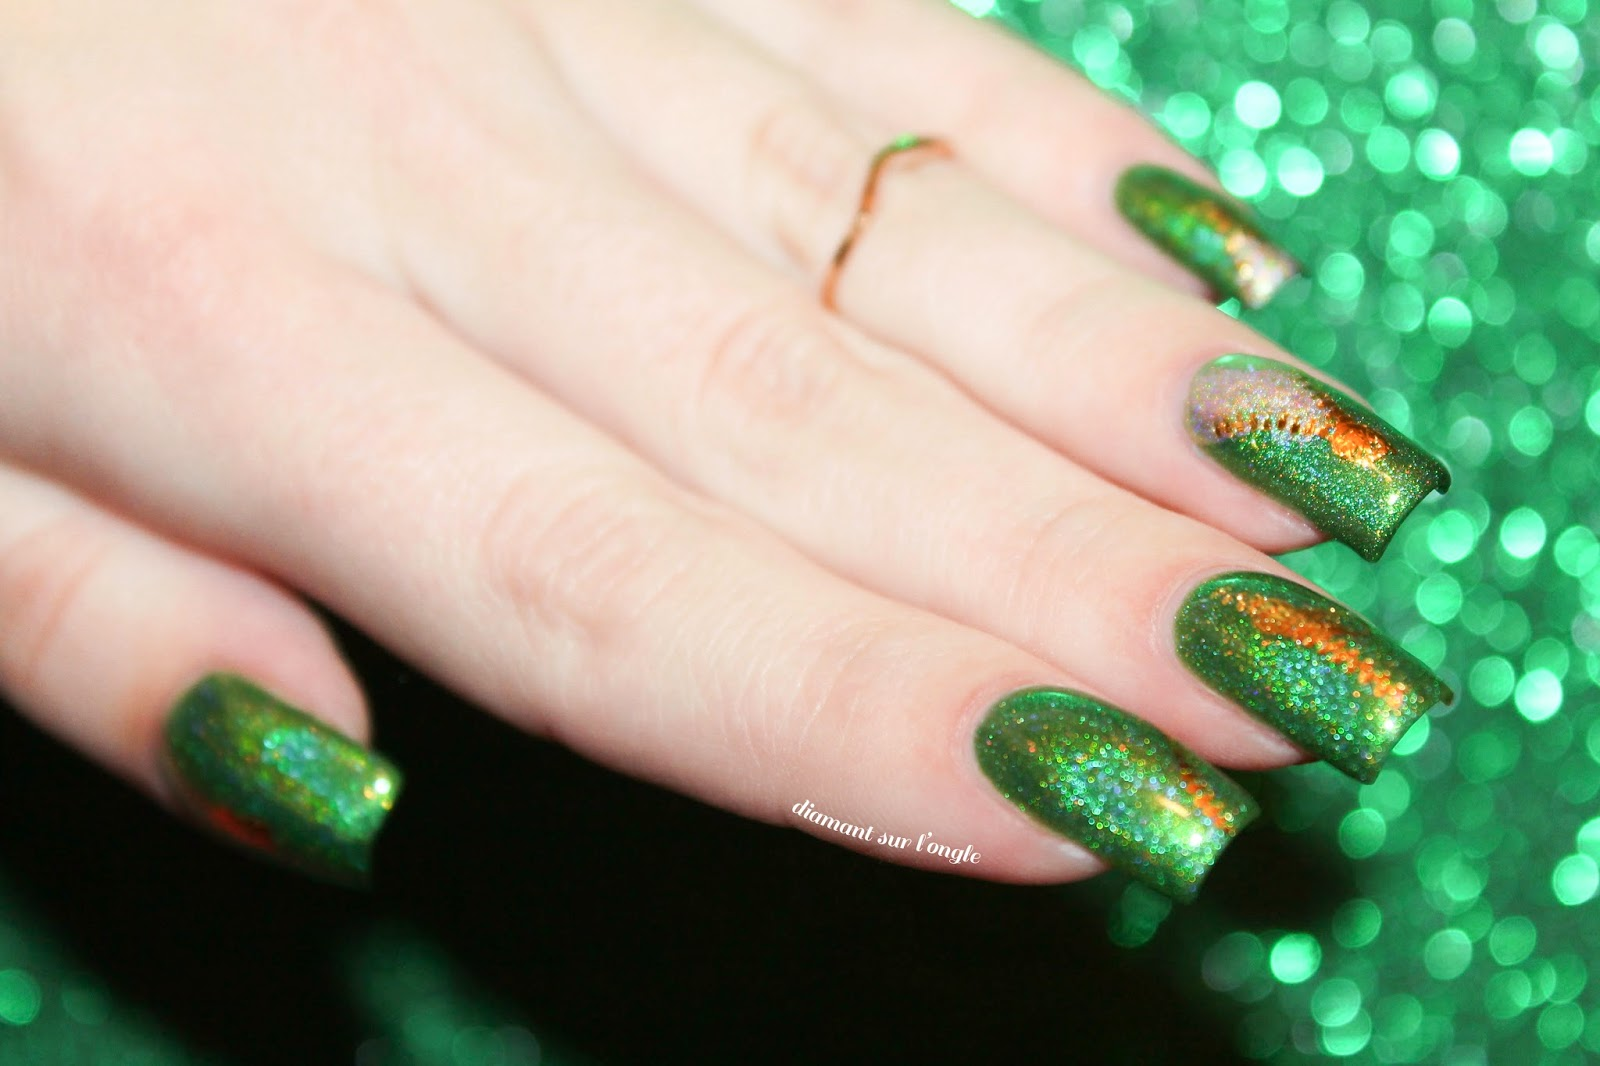 Green Holo Nail Art